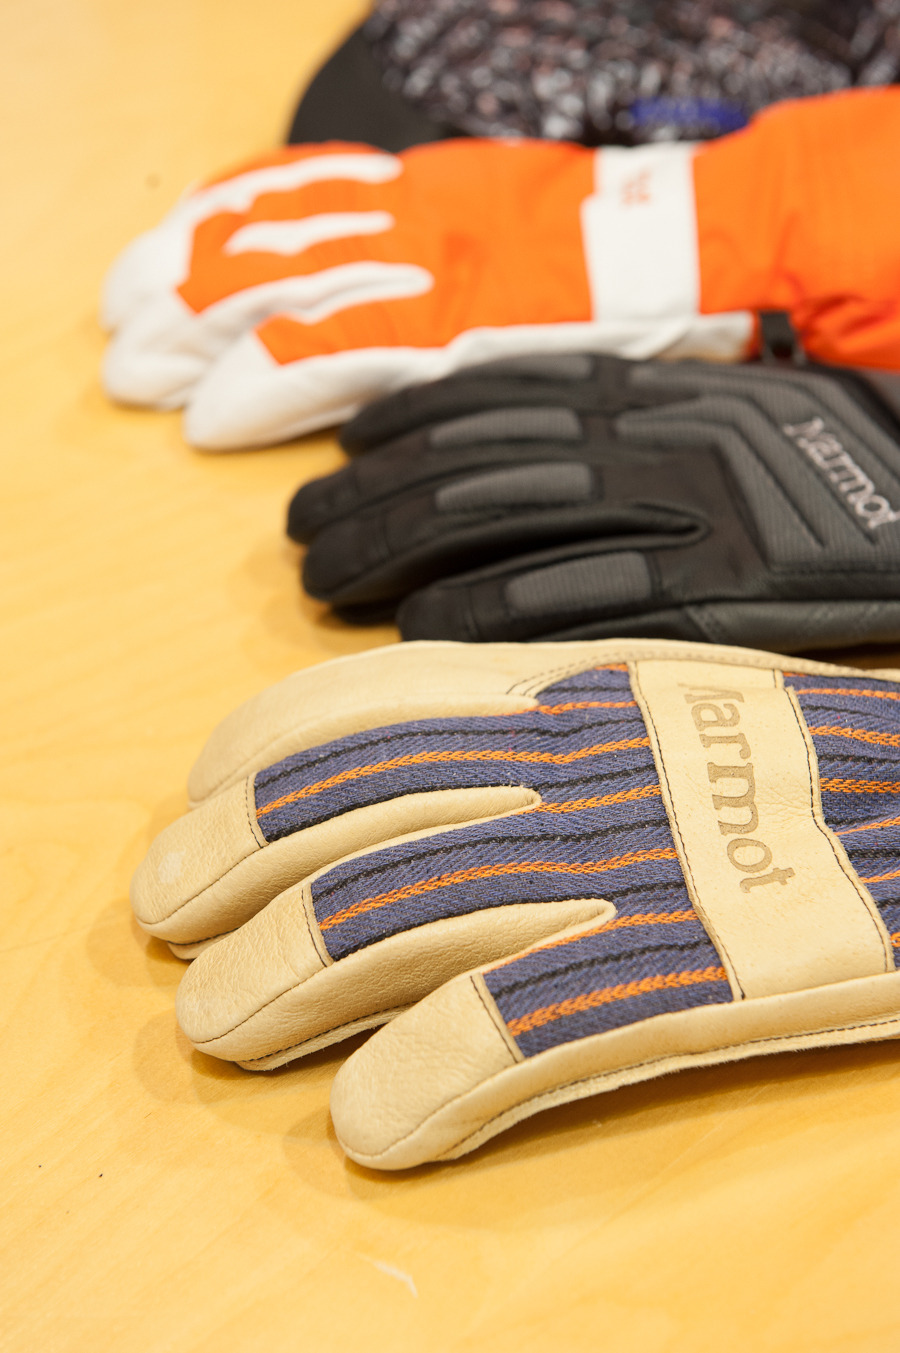 The collection of Marmot Armageddon gloves have Polartec Alpha as well as Marmot driClimb lining. The leather is washable and has reinforced foam padding. 